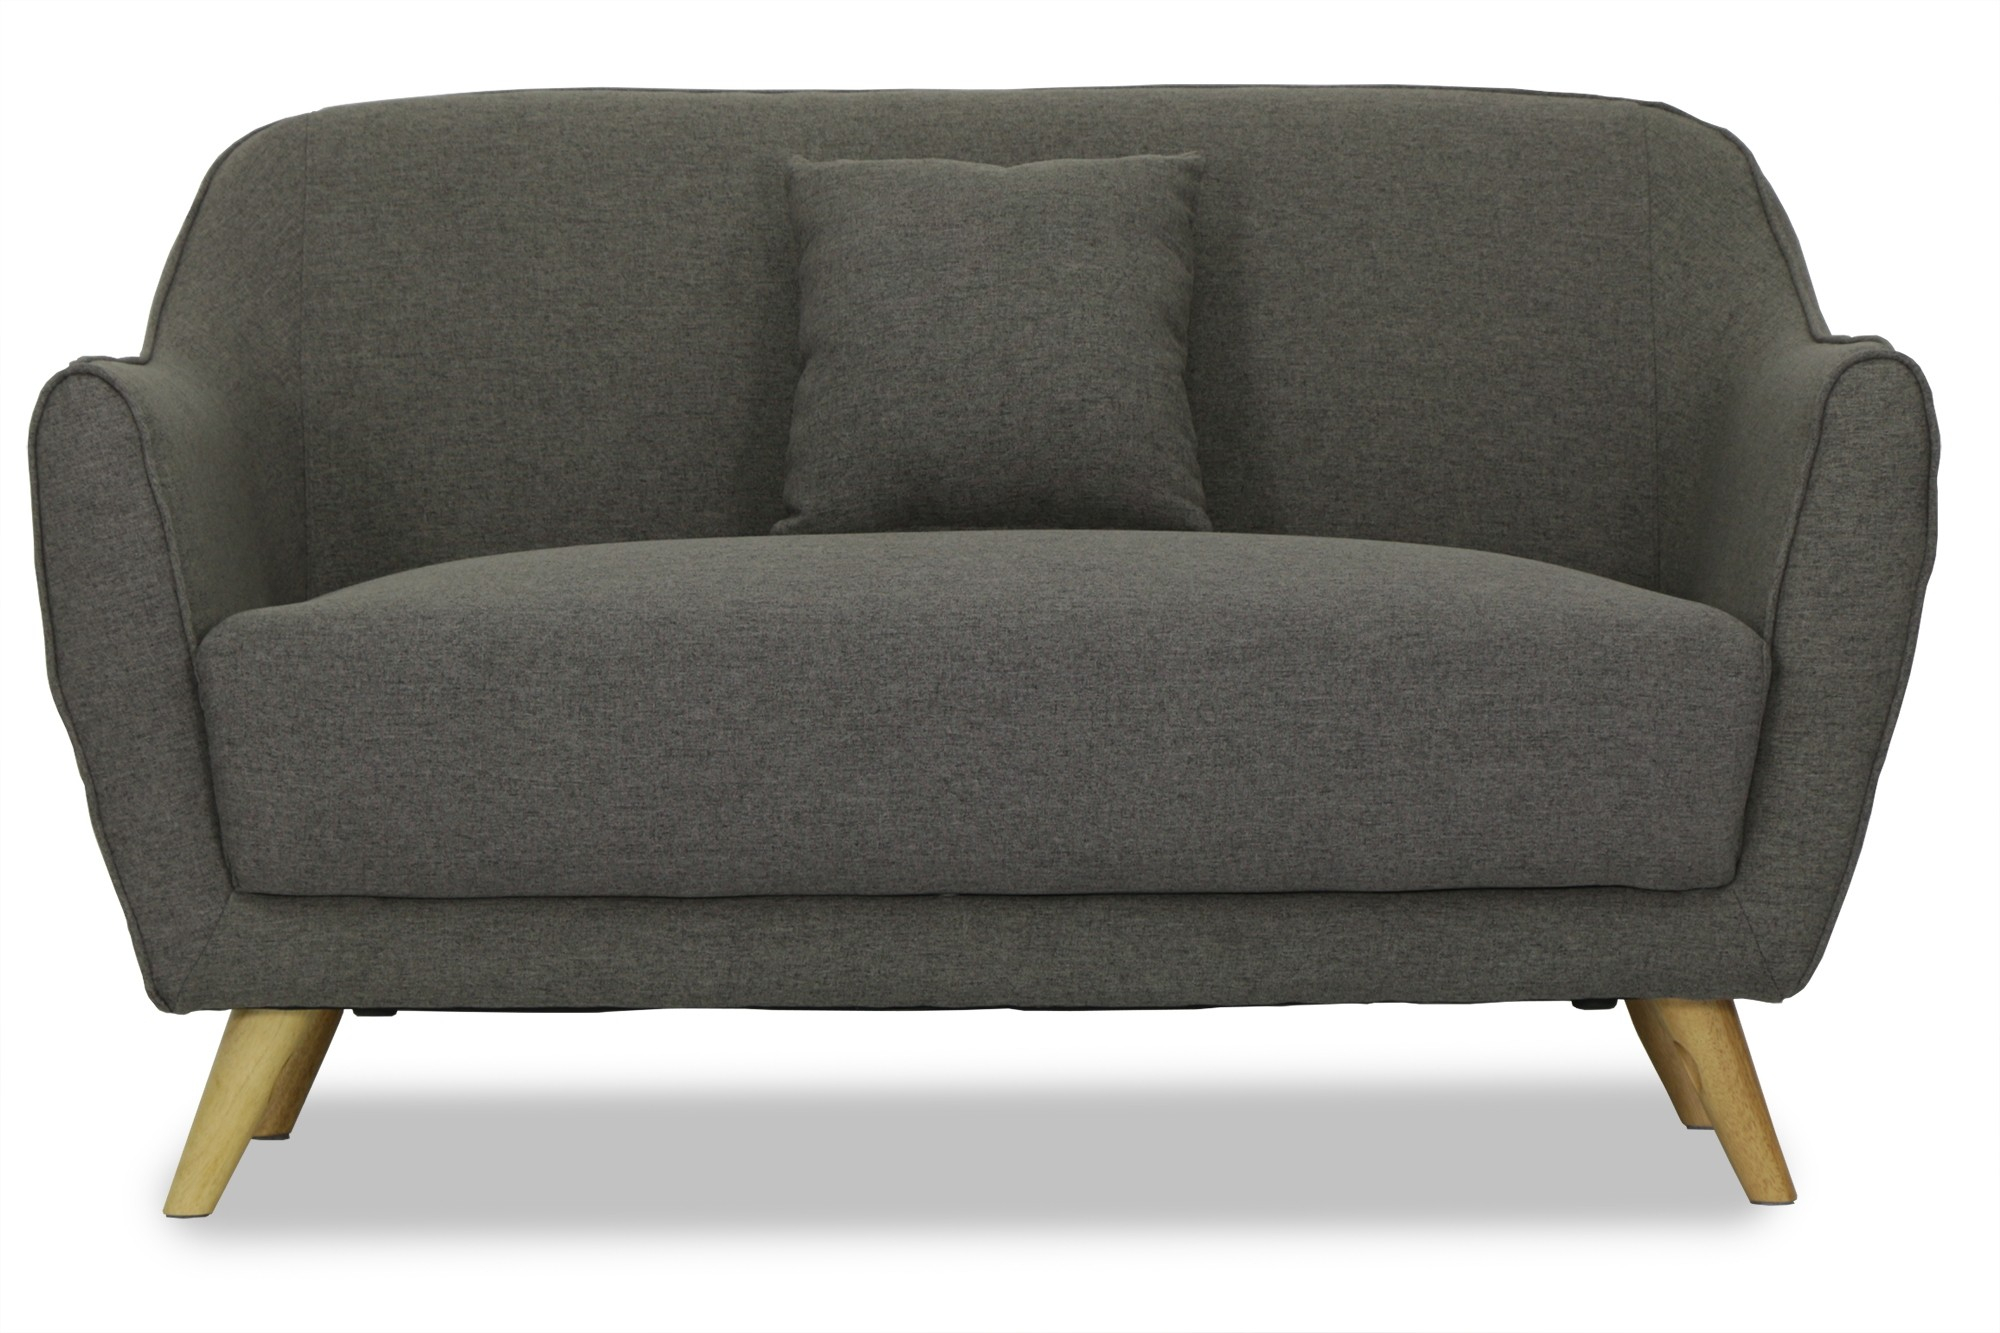 Kokoro Ii 2 Seater Sofa | Furniture & Home Décor | Fortytwo Intended For Gina Blue Leather Sofa Chairs (Image 15 of 25)